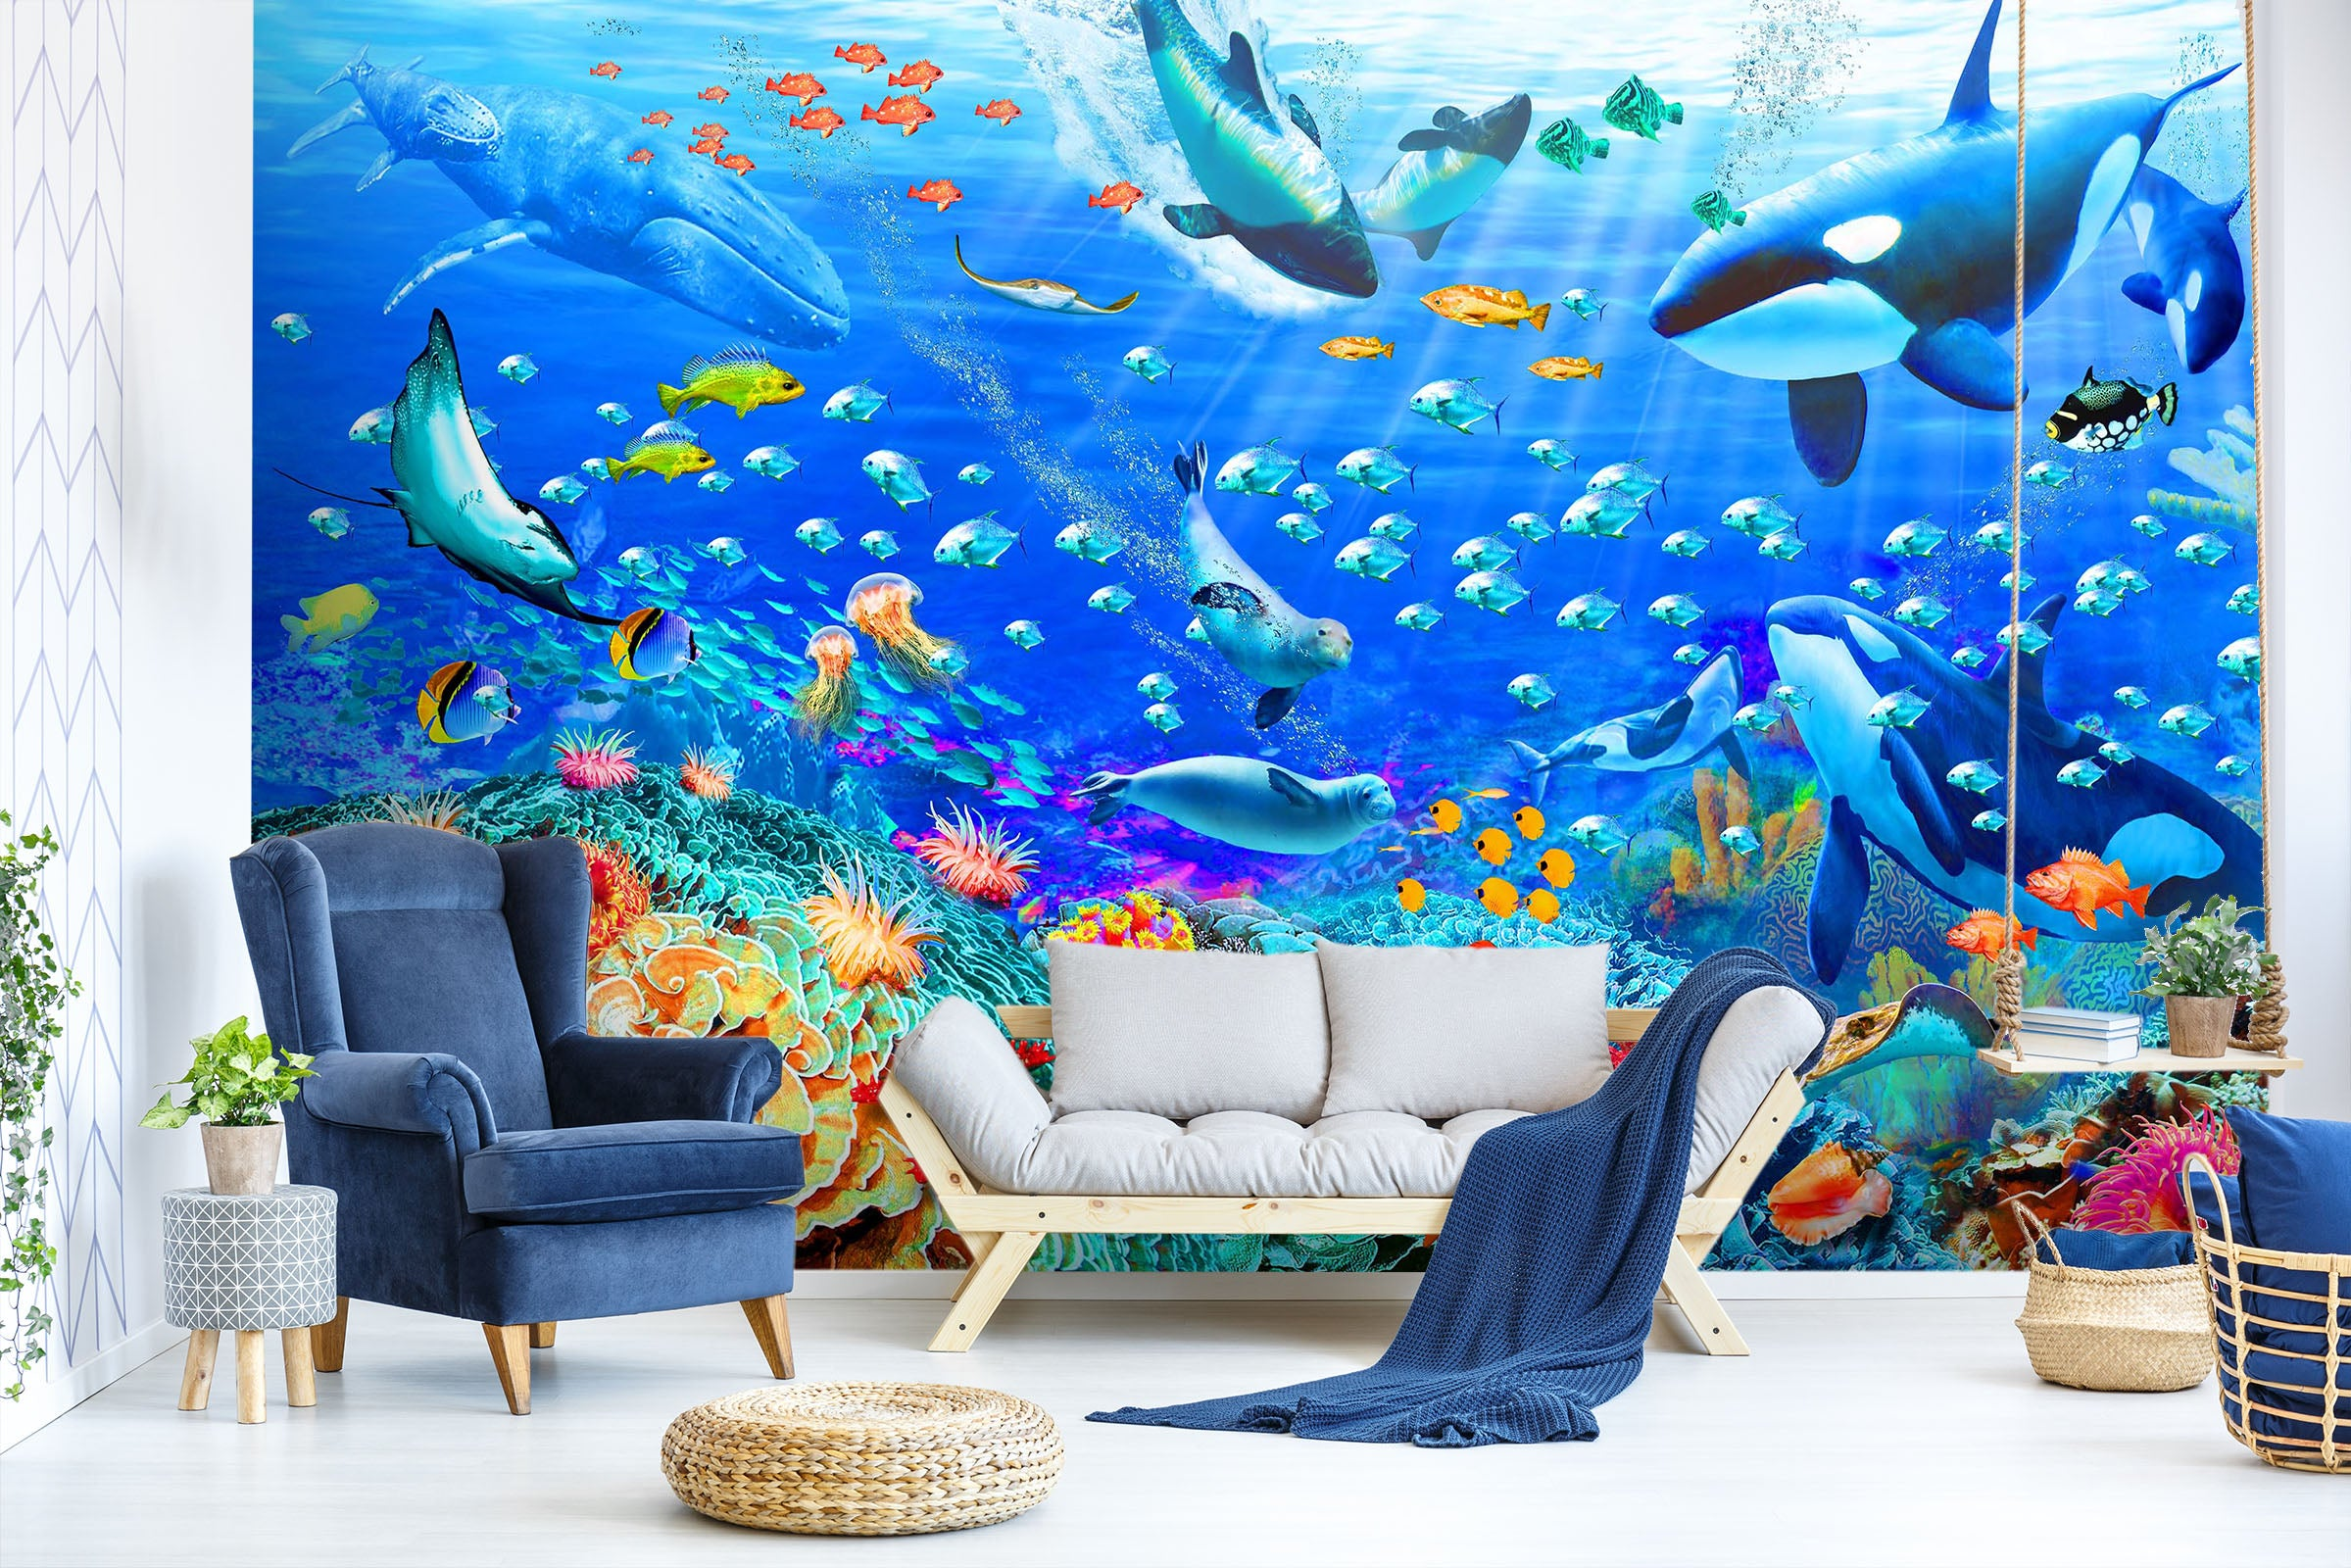 3D The Underwater World 1410 Adrian Chesterman Wall Mural Wall Murals